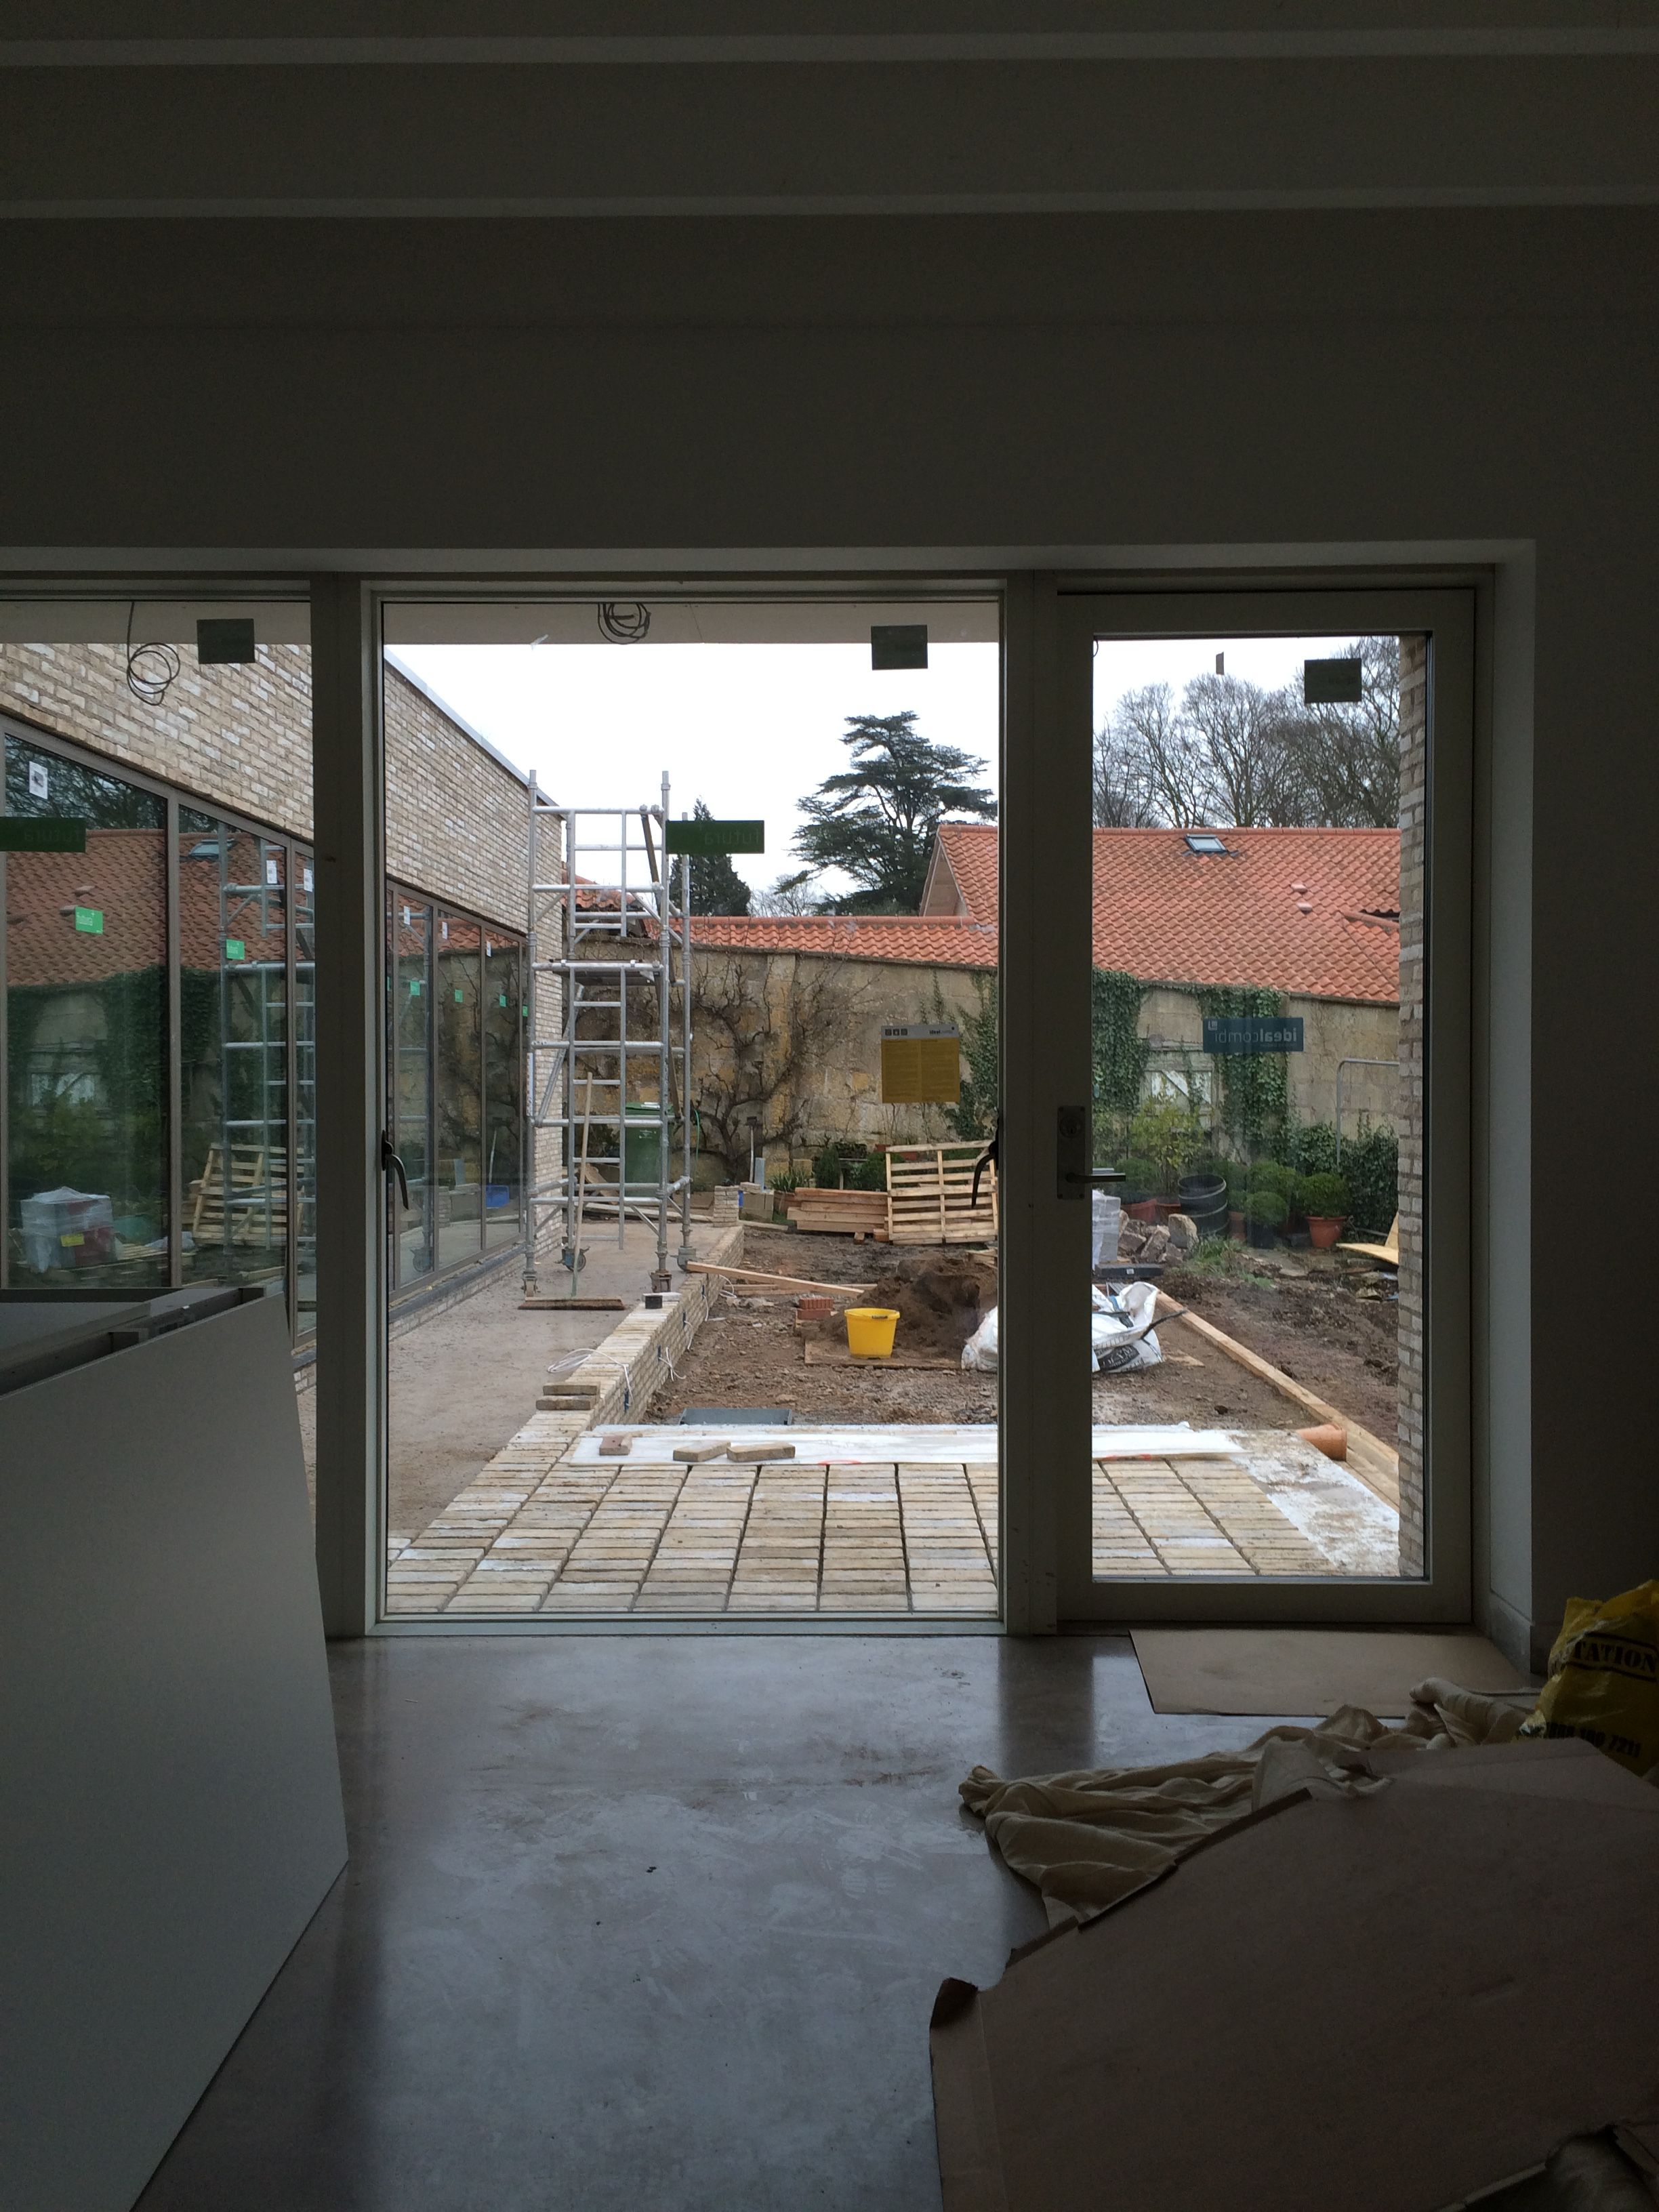 Idealcombi Futura+ Low Threshold Sliding Doors Allowing Easy Access To The  Outside.